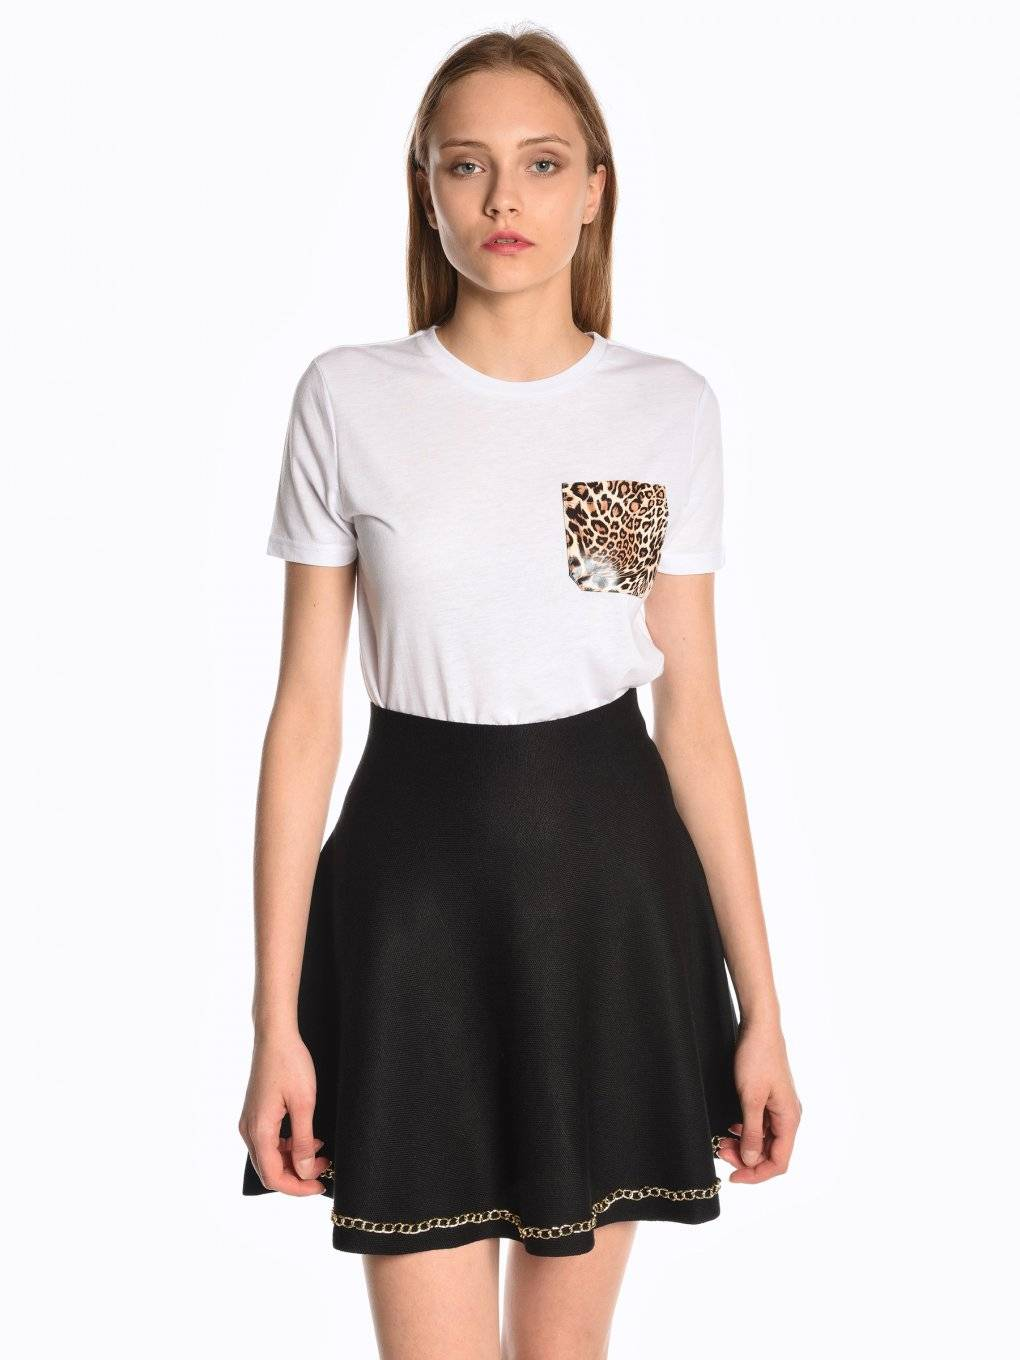 T-shirt with animal print on chest pocket